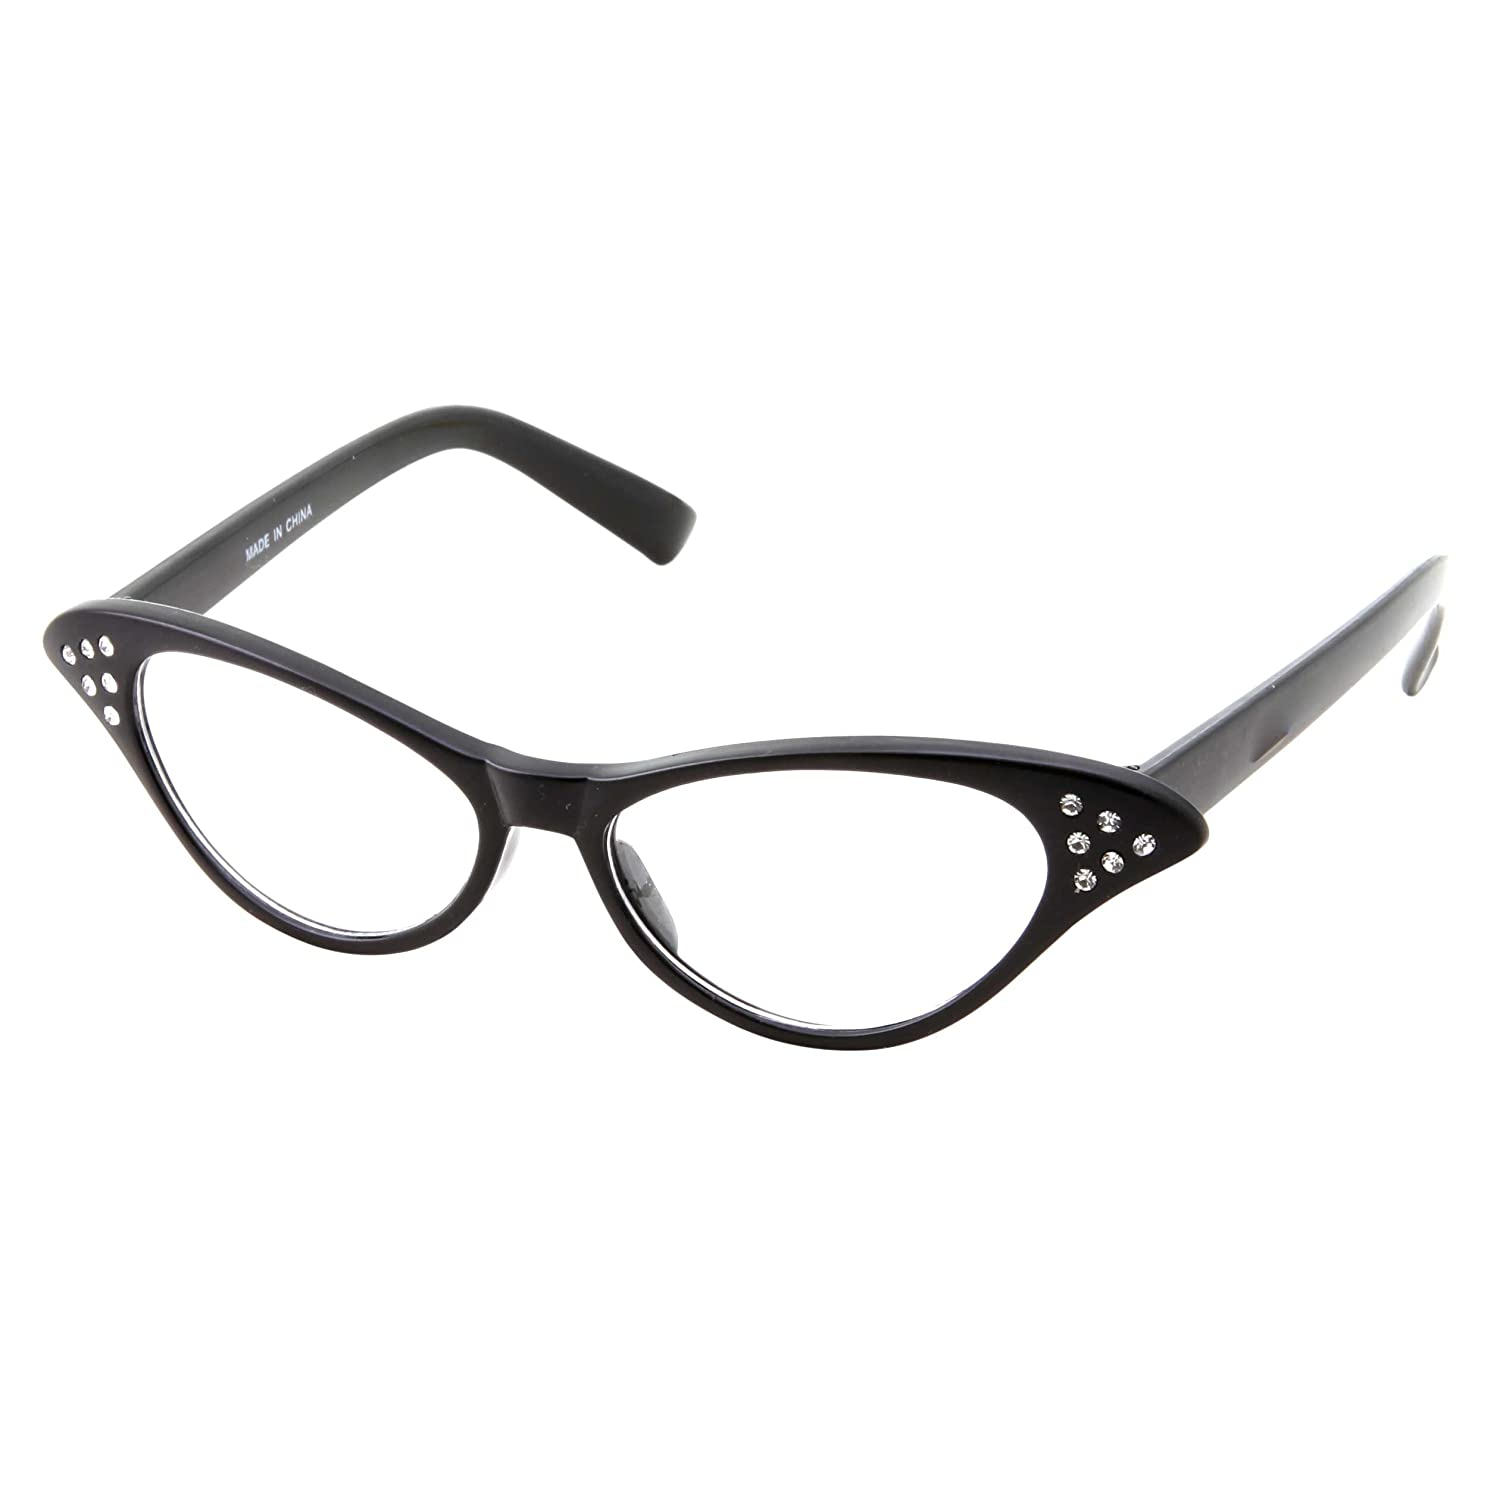 28ebf4b750c Amazon.com  50 s Kids Nerd Cat Eye Glasses Girls Costume Children s (Age  3-12) (Black)  Clothing